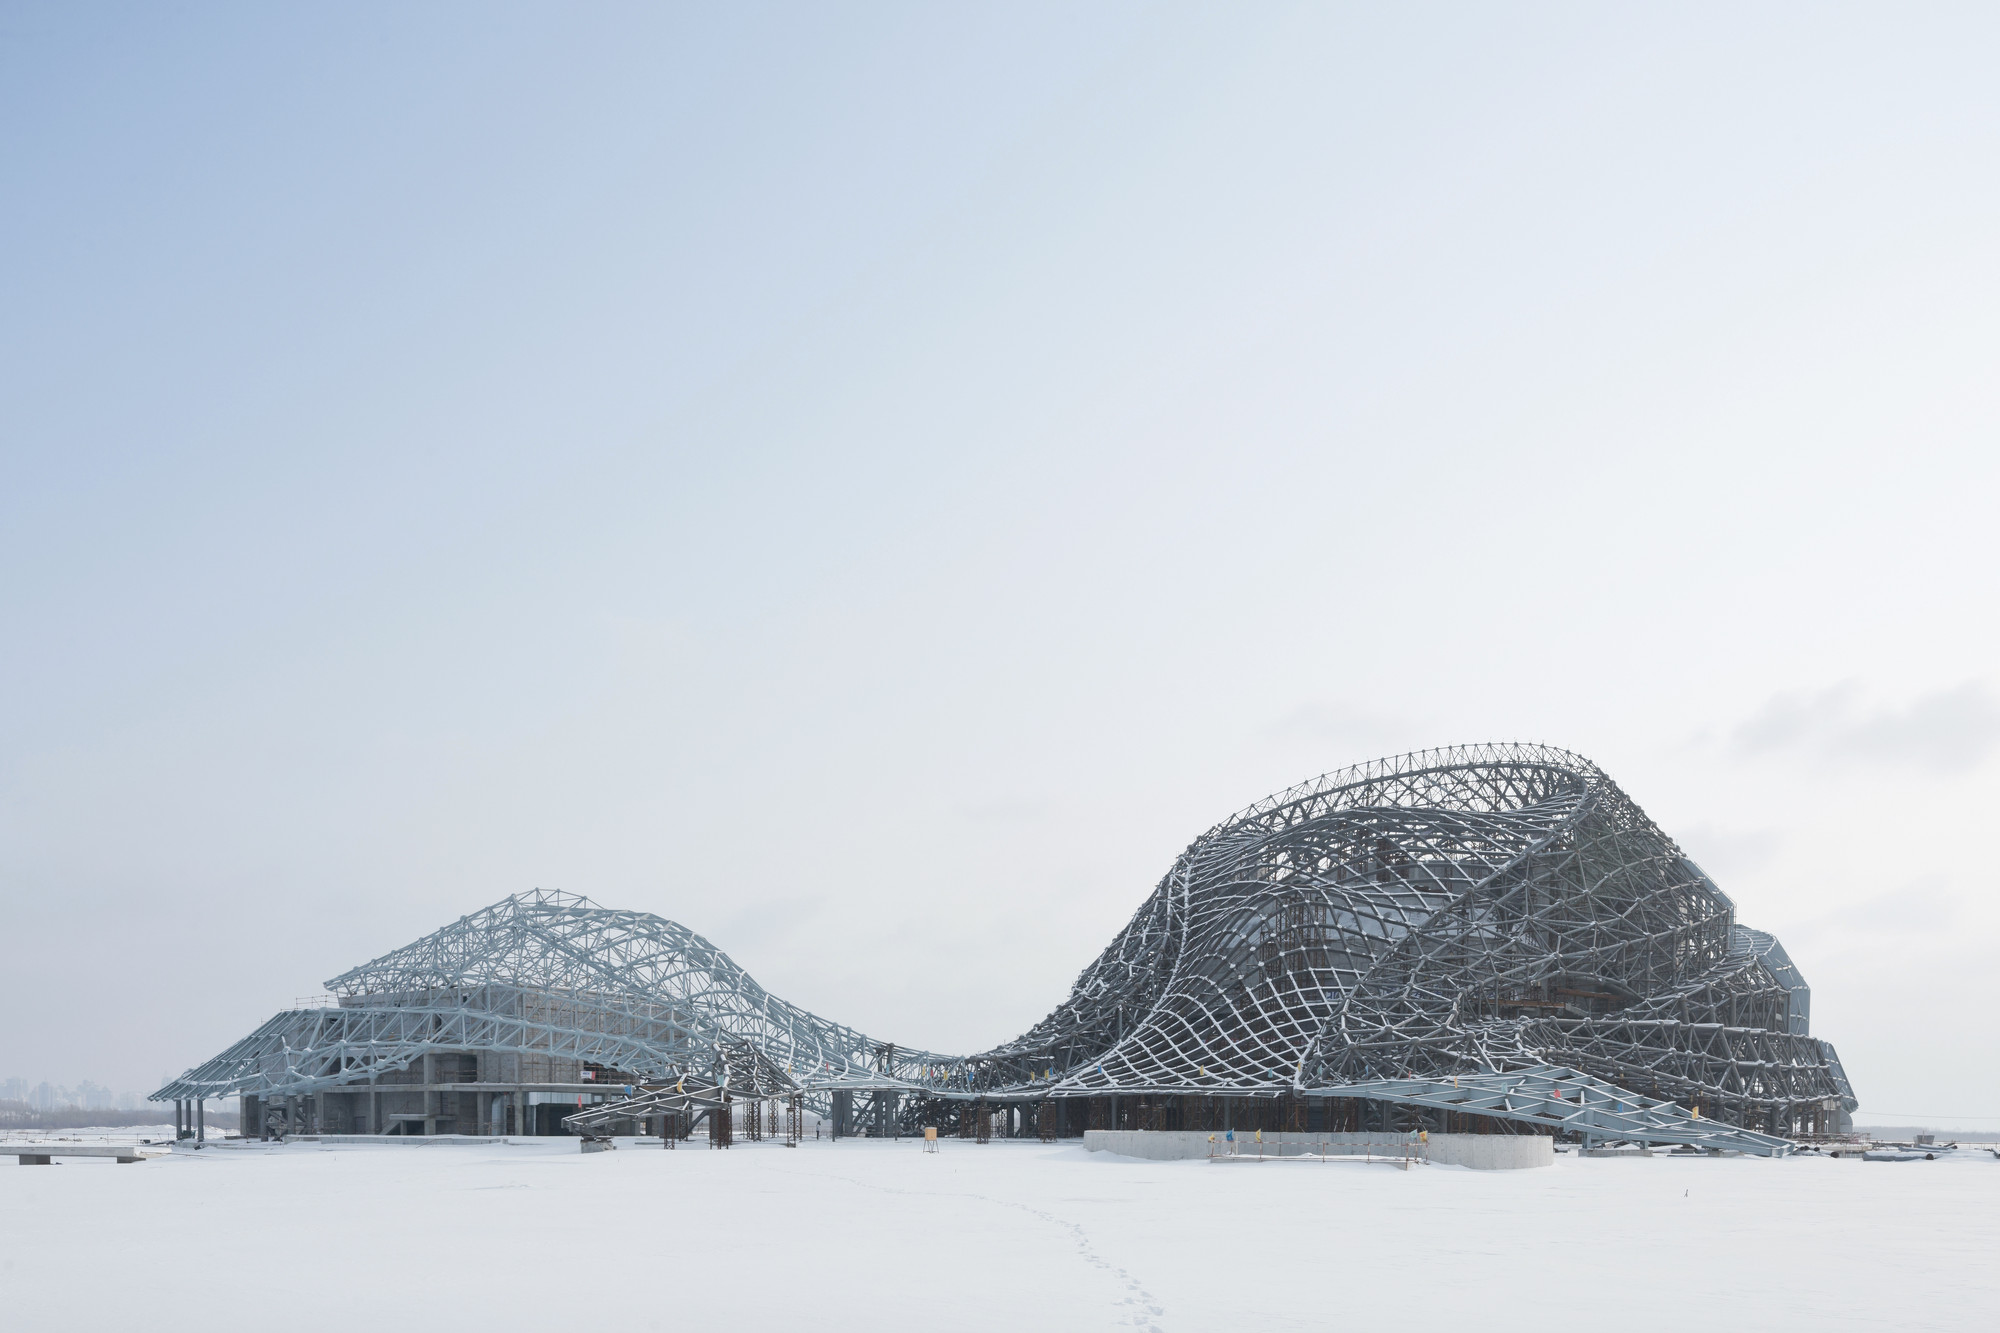 Harbin Cultural Center / MAD Architects, © MAD Architects